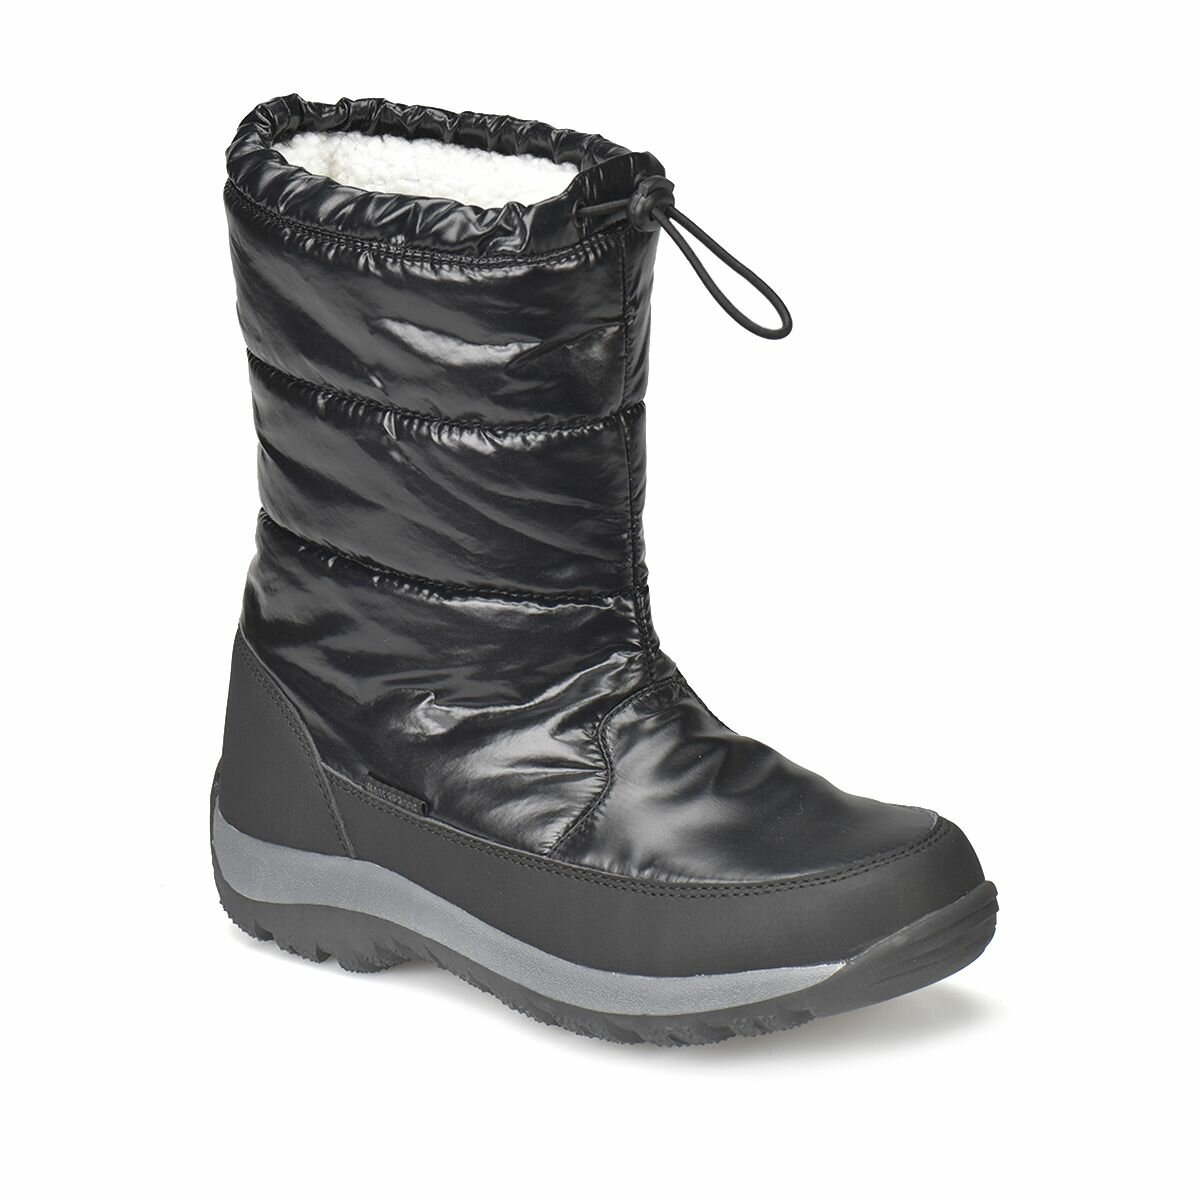 FLO JAIDA Black Women Outdoor Boots LUMBERJACK